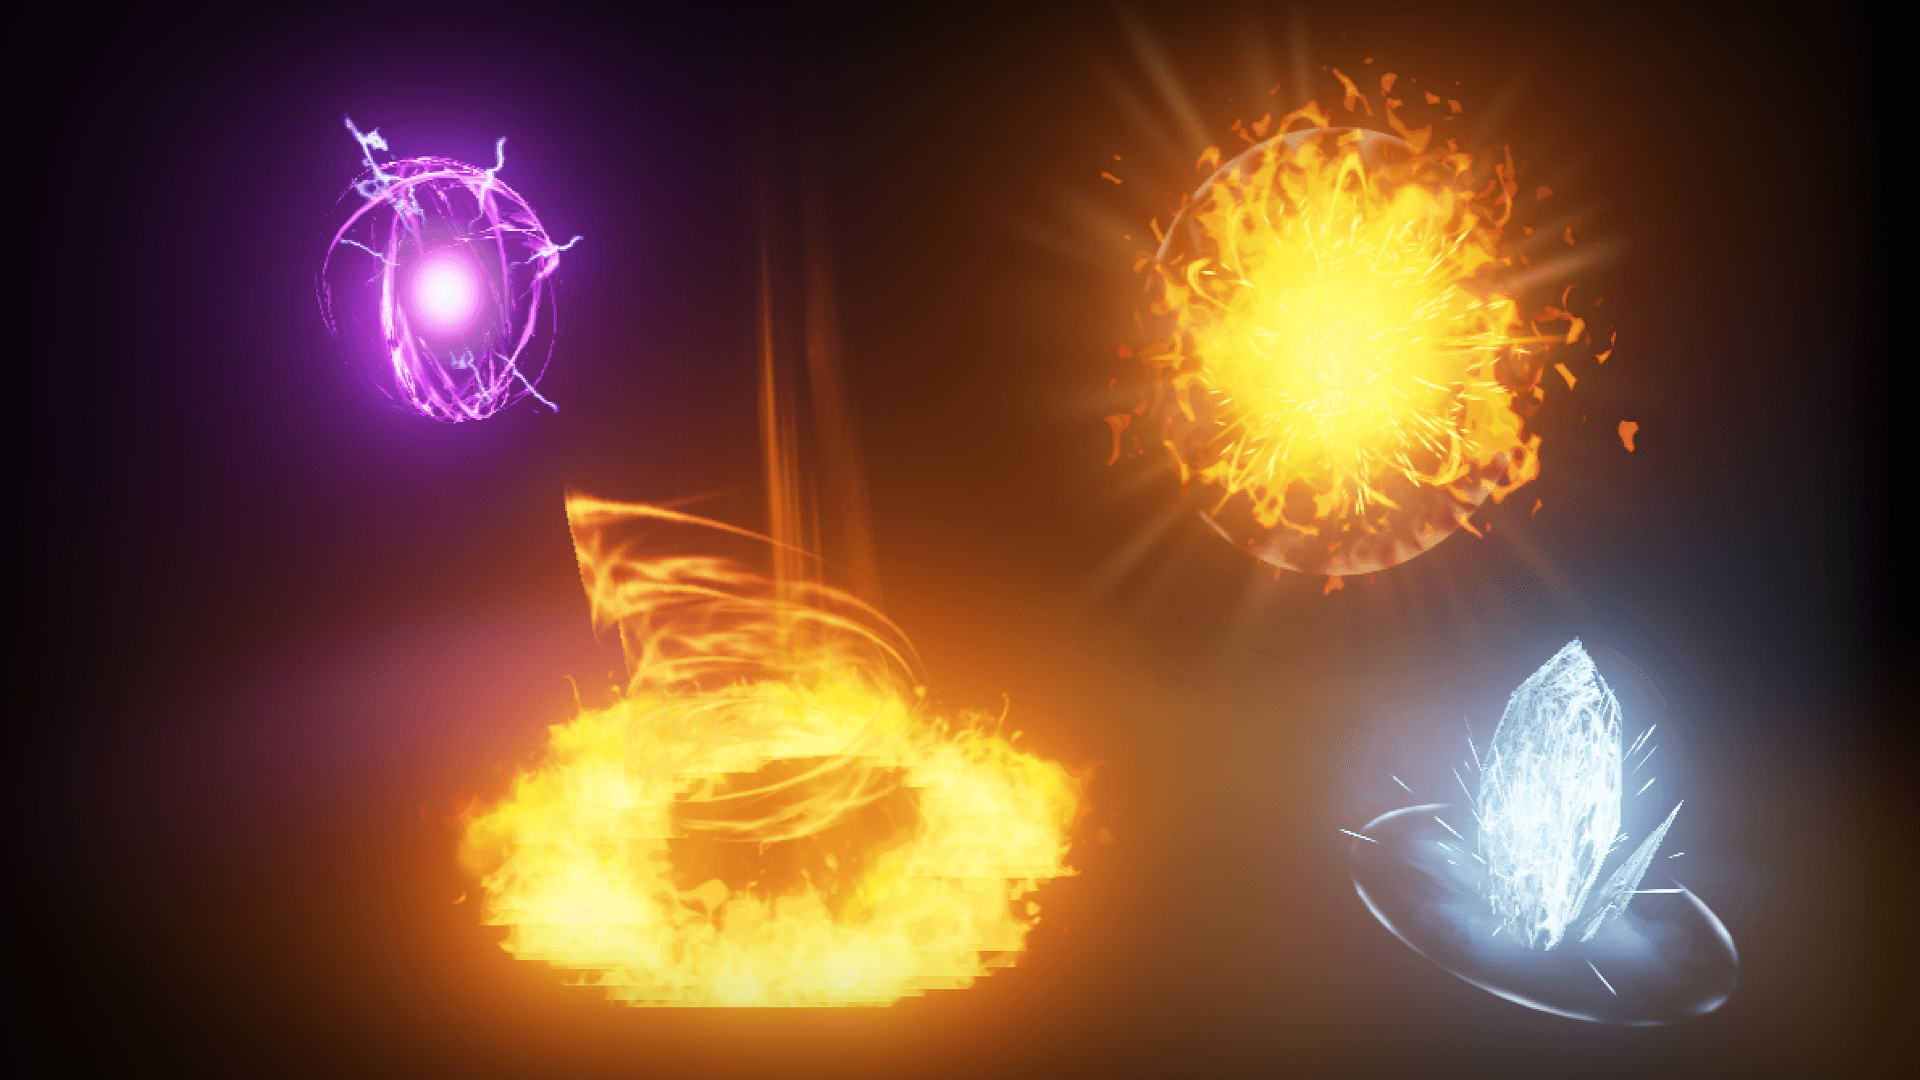 KY Magic FX 04 by Kakky in Visual Effects - UE4 Marketplace